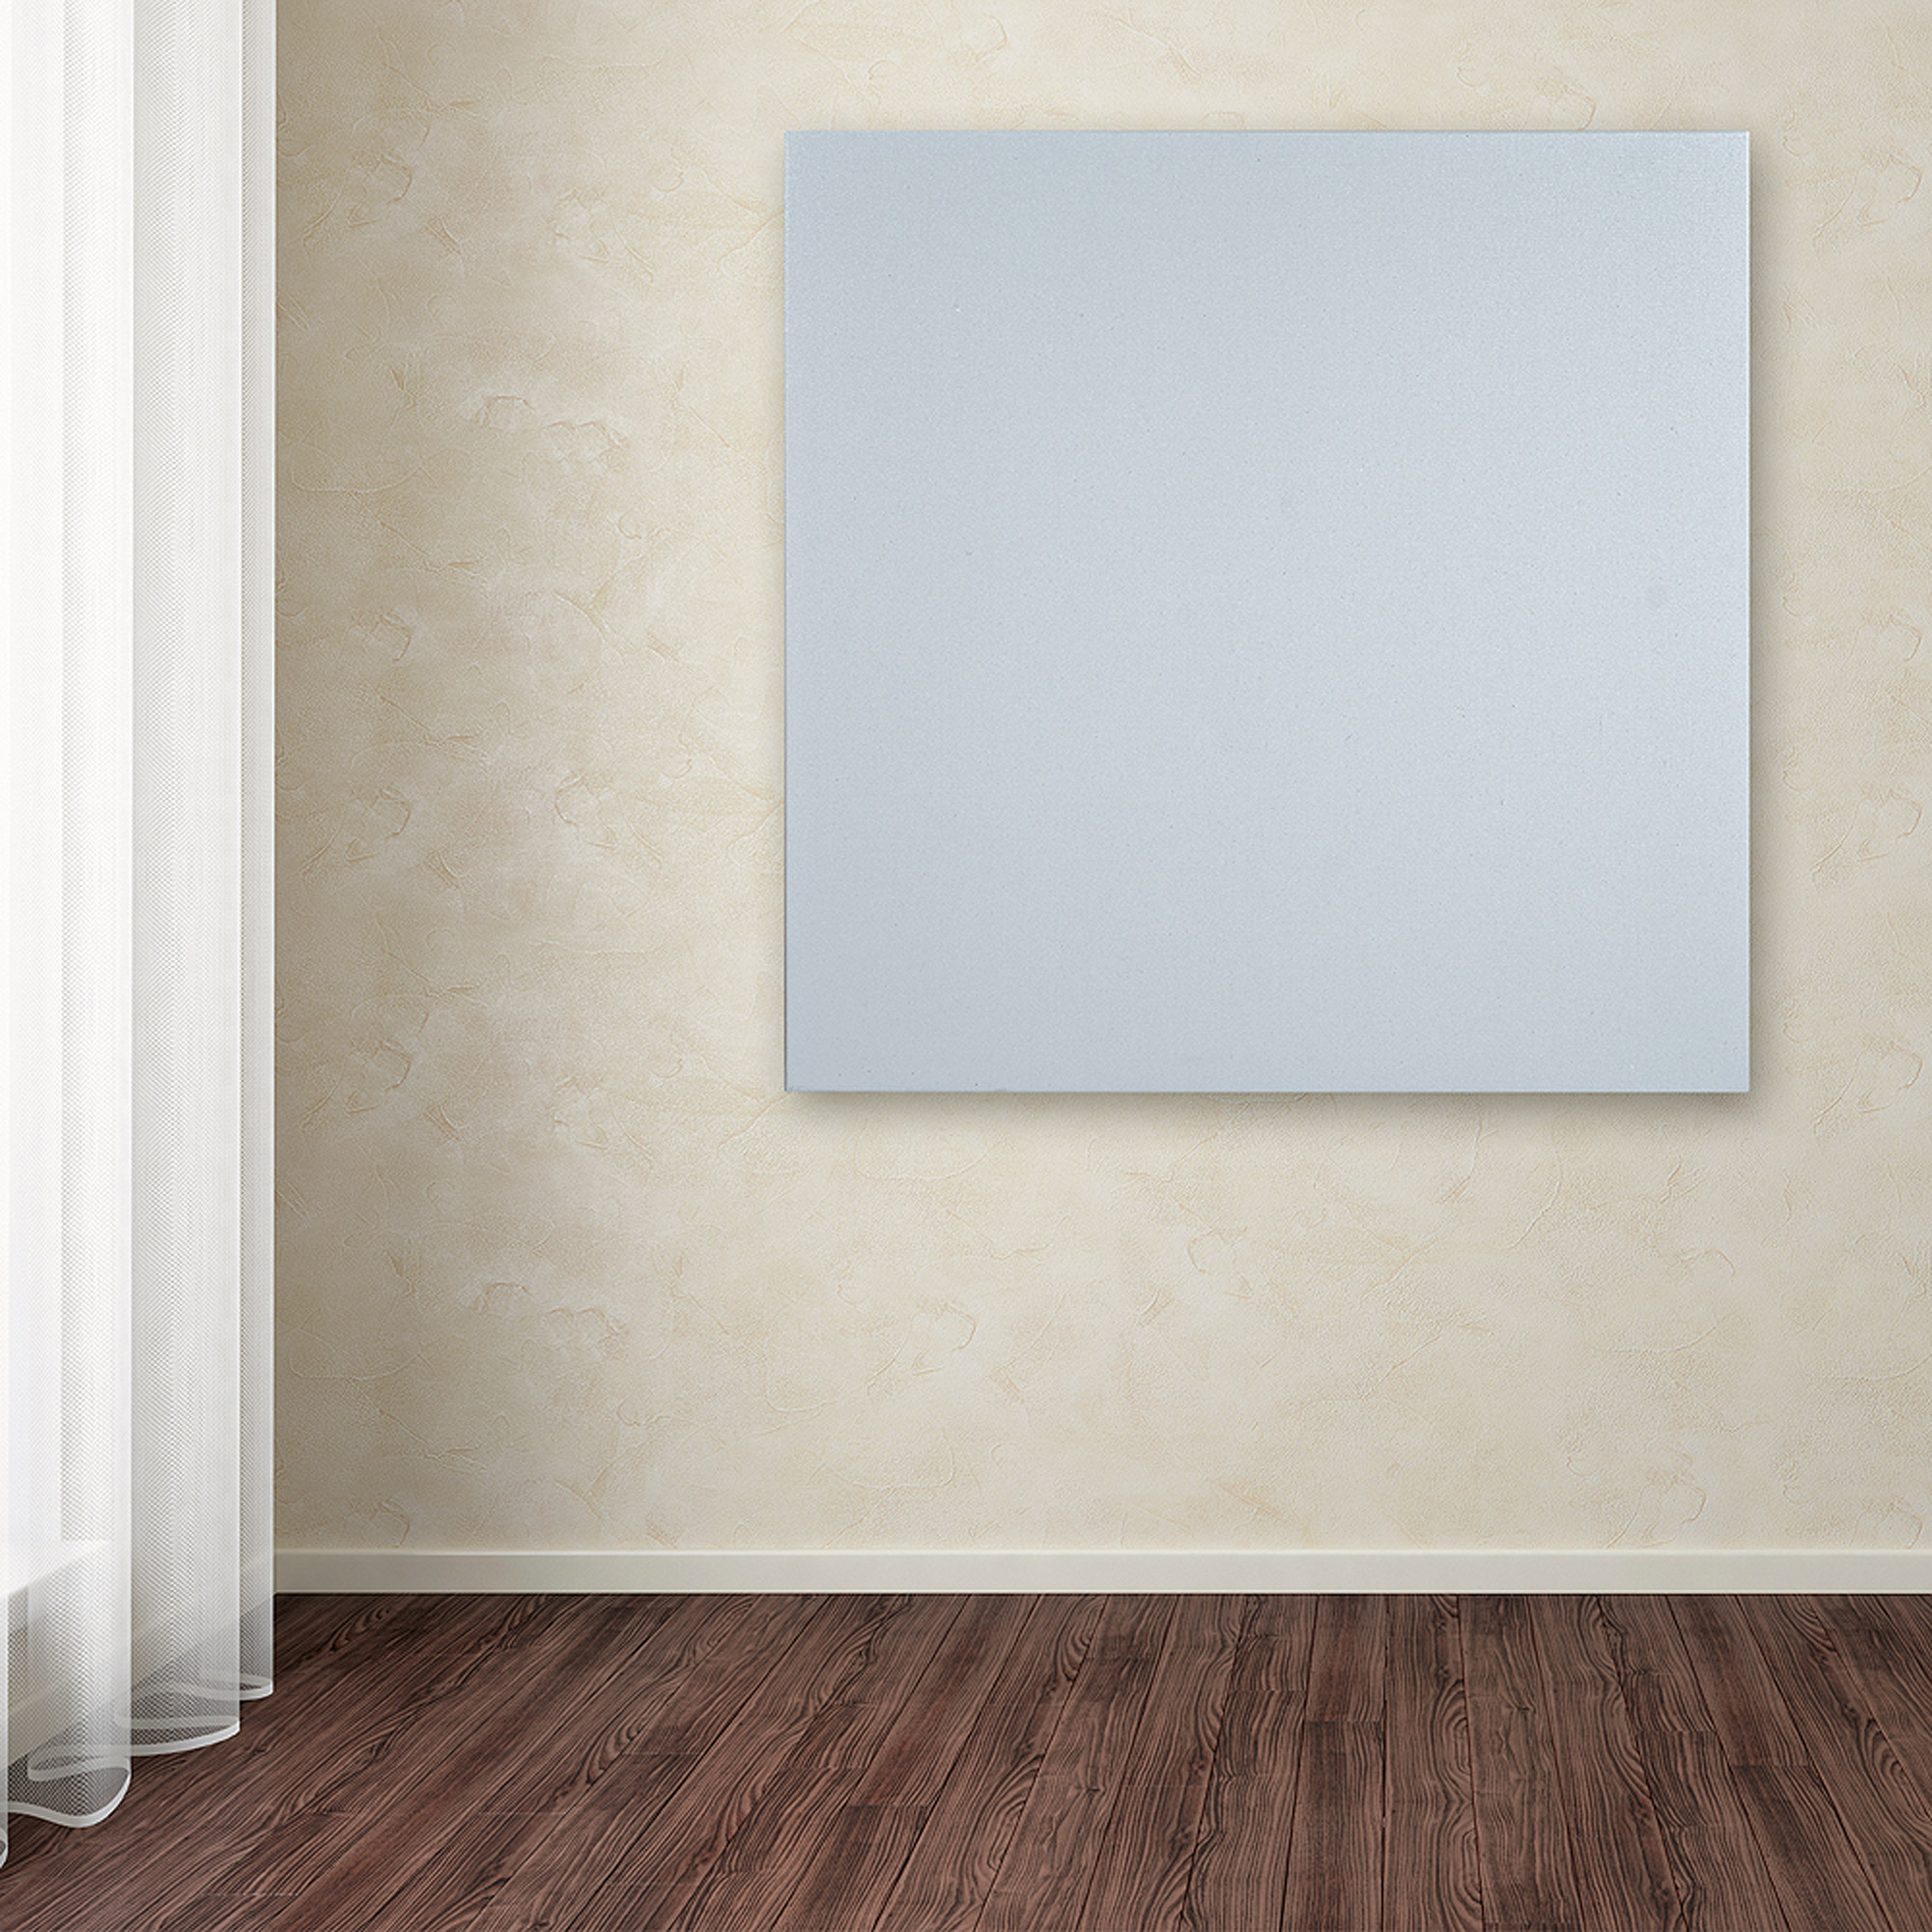 trademark fine art professional blank white canvas on stretcher bars